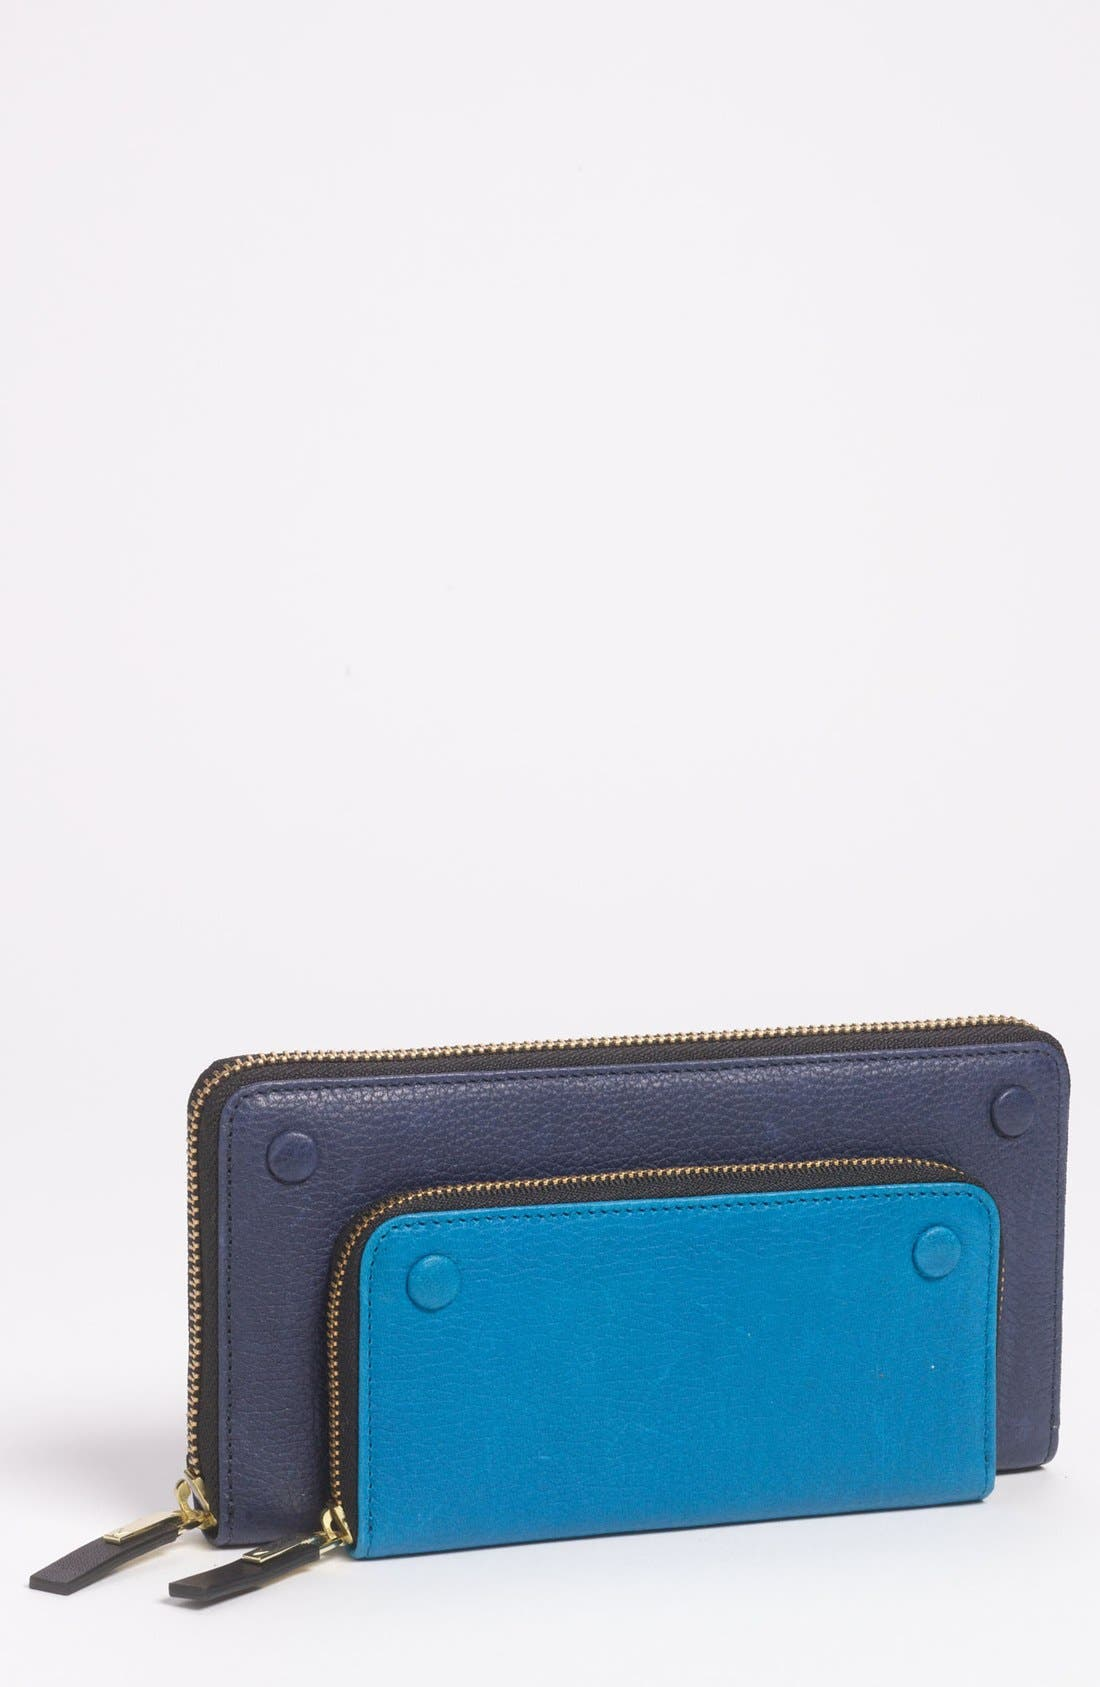 Alternate Image 1 Selected - Vince Camuto 'Mikey' Zip Around Wallet